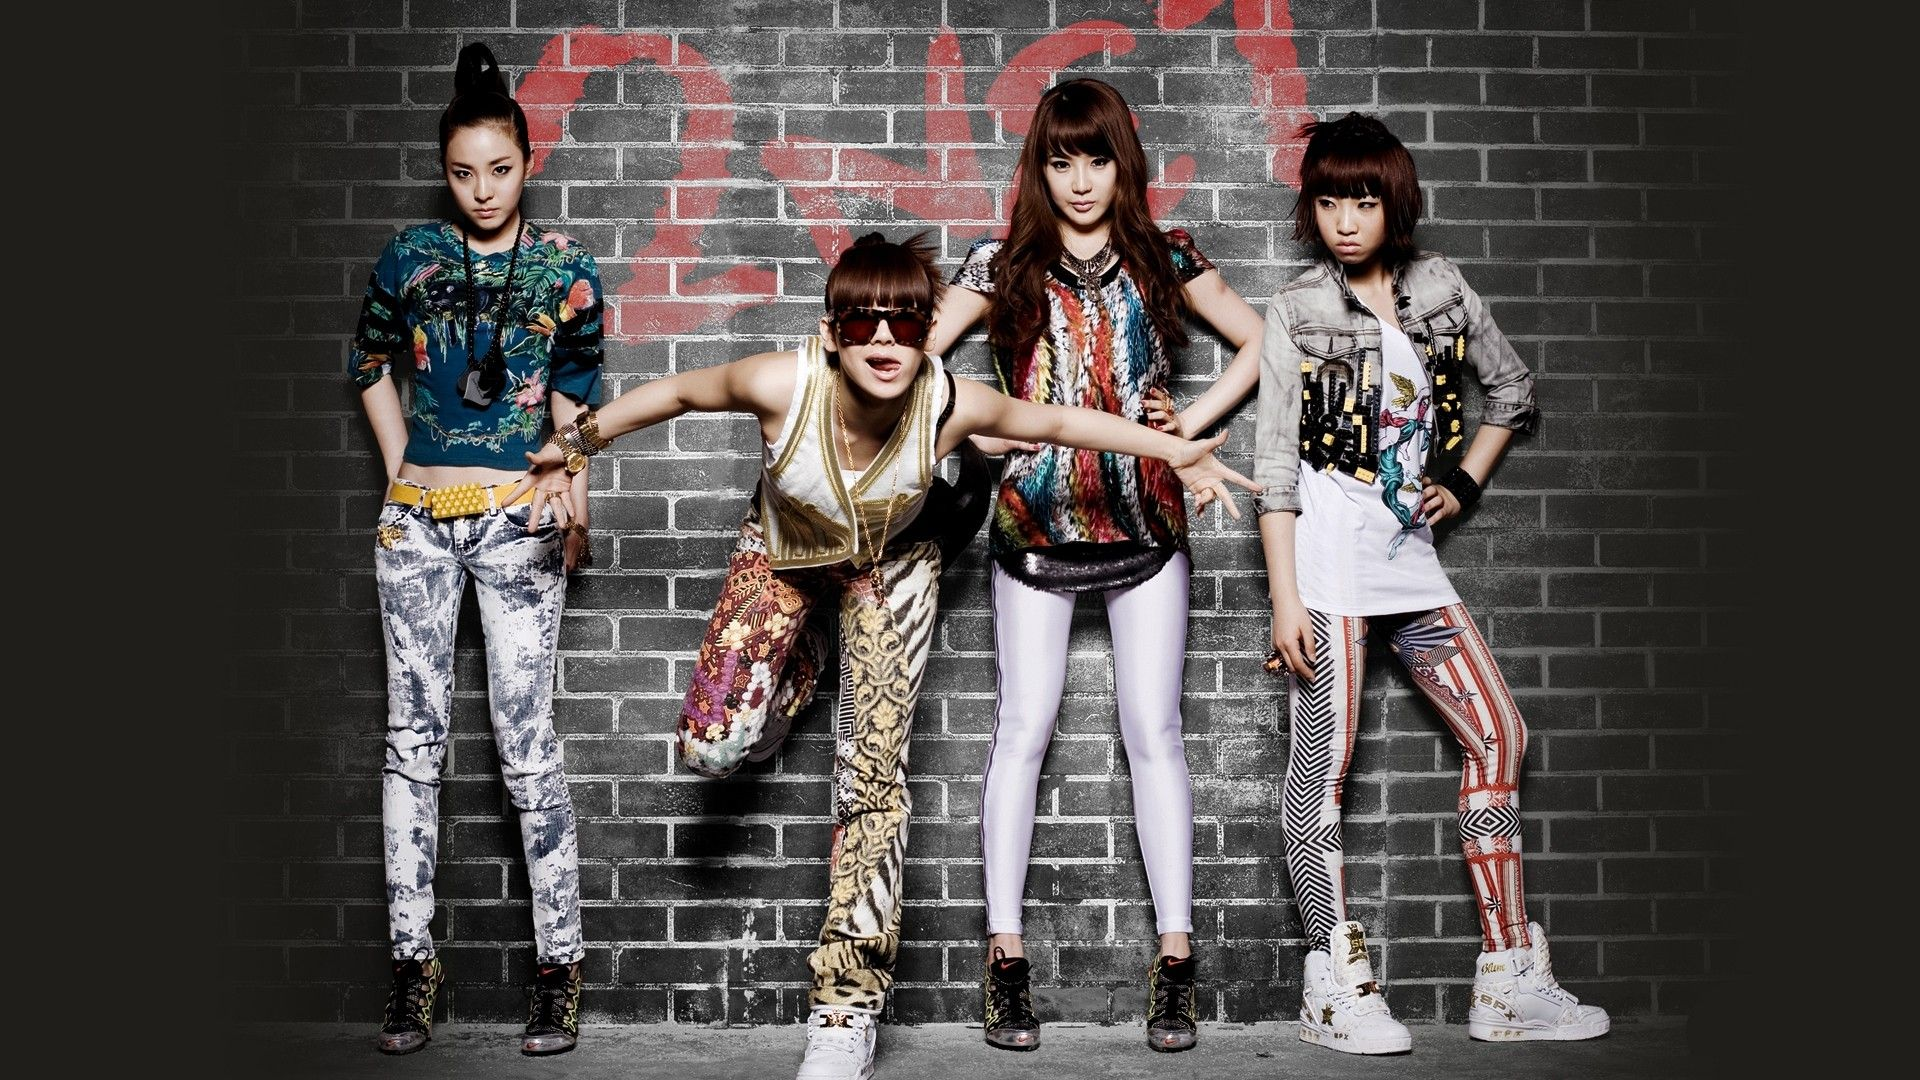 cool wallpapers 2ne1 kpop hd wallpaper